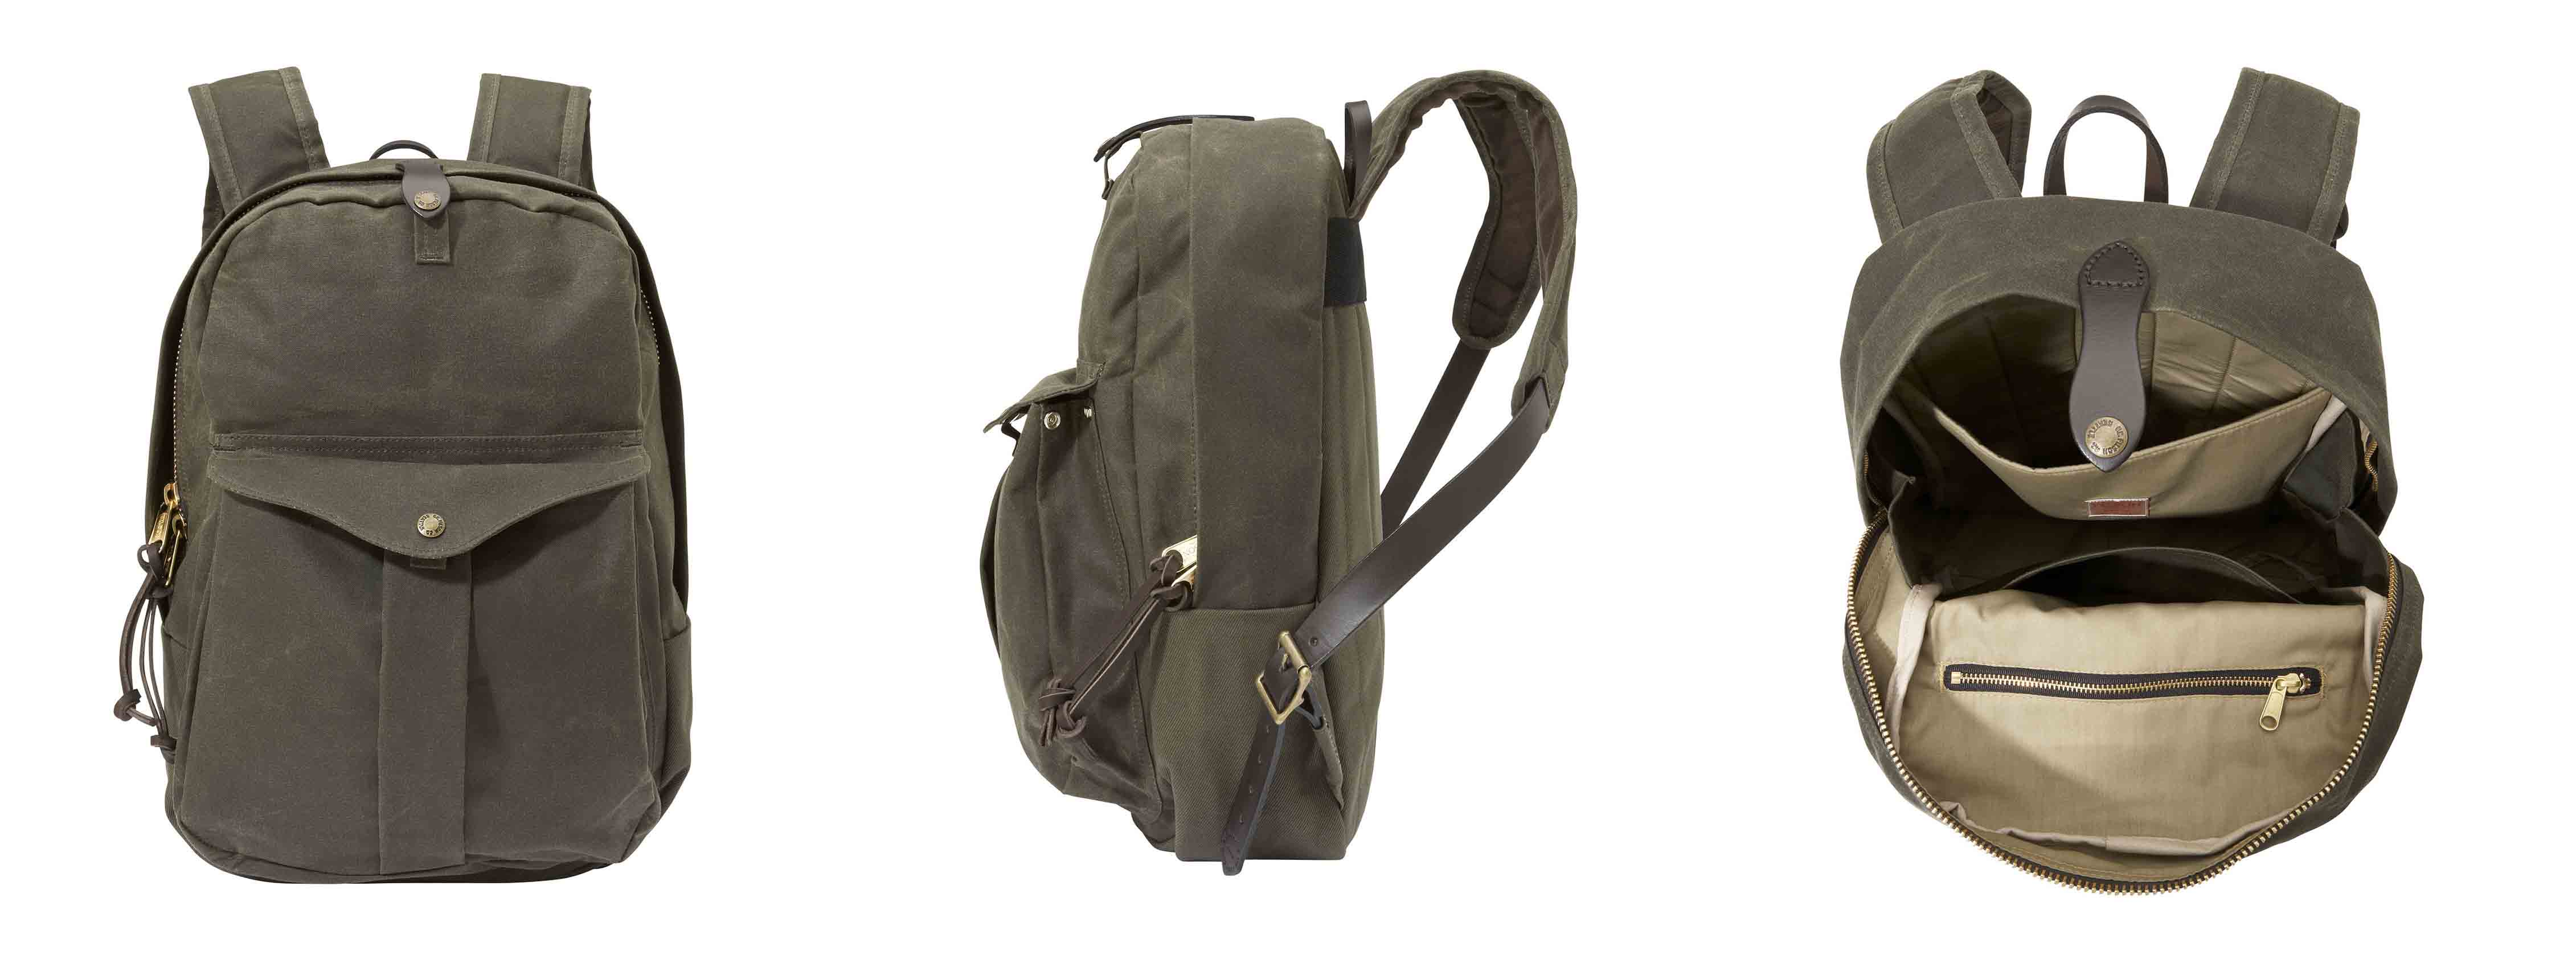 Filson Water resistant Backpack